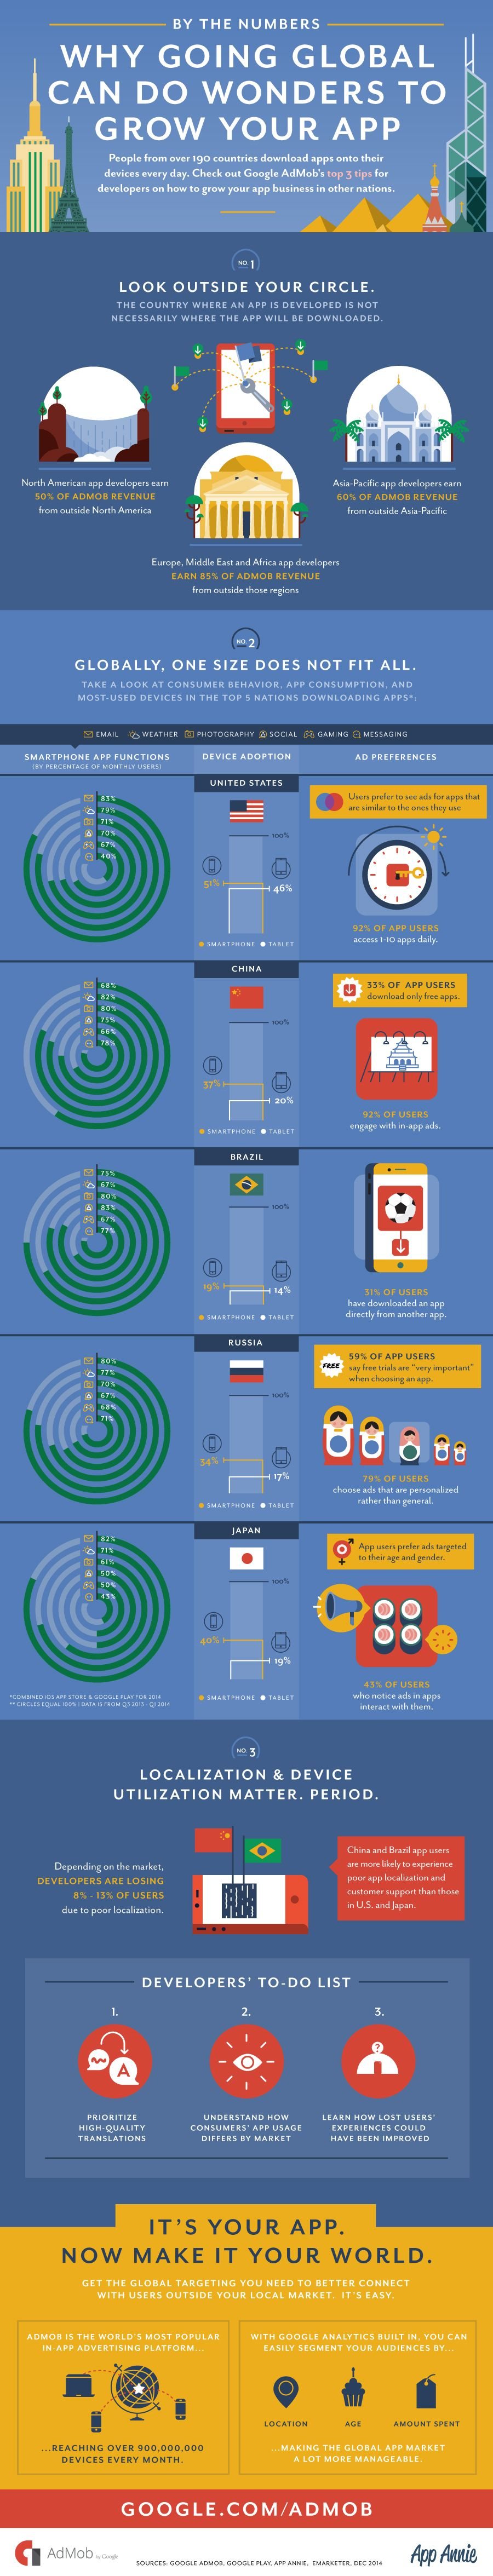 Why Going Global Can Do Wonders To Grow Your App #infographic